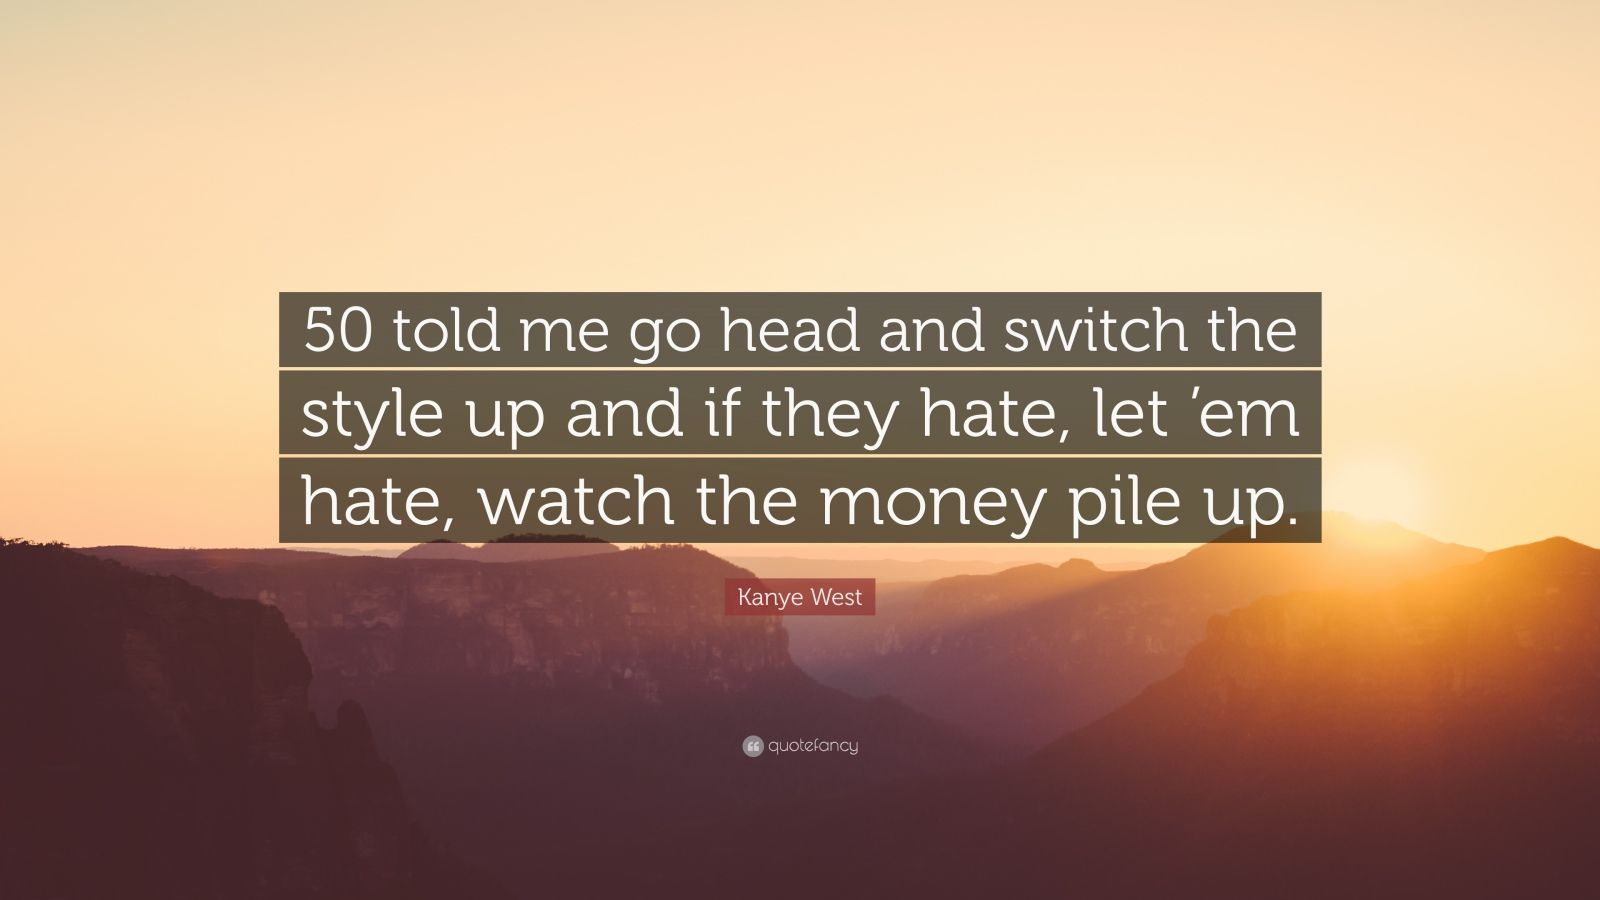 """Kanye West Quote: """"50 told me go head and switch the style up and if they hate, let 'em hate, watch the money pile up."""""""